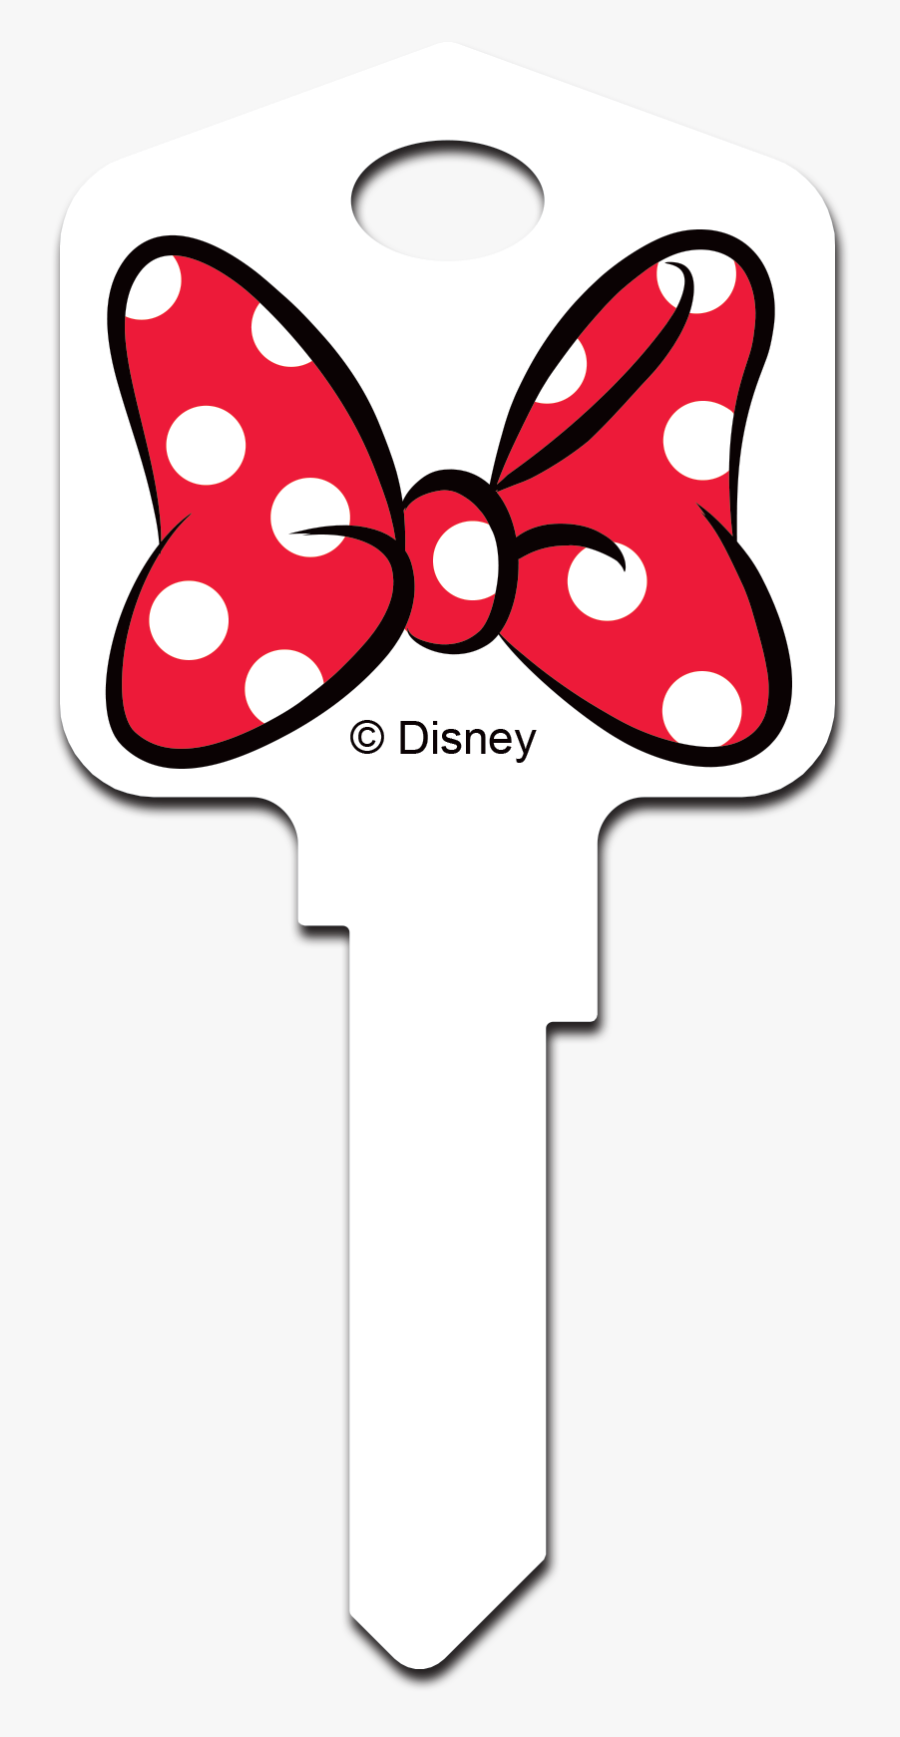 Minnie Mouse Red Bow, Transparent Clipart